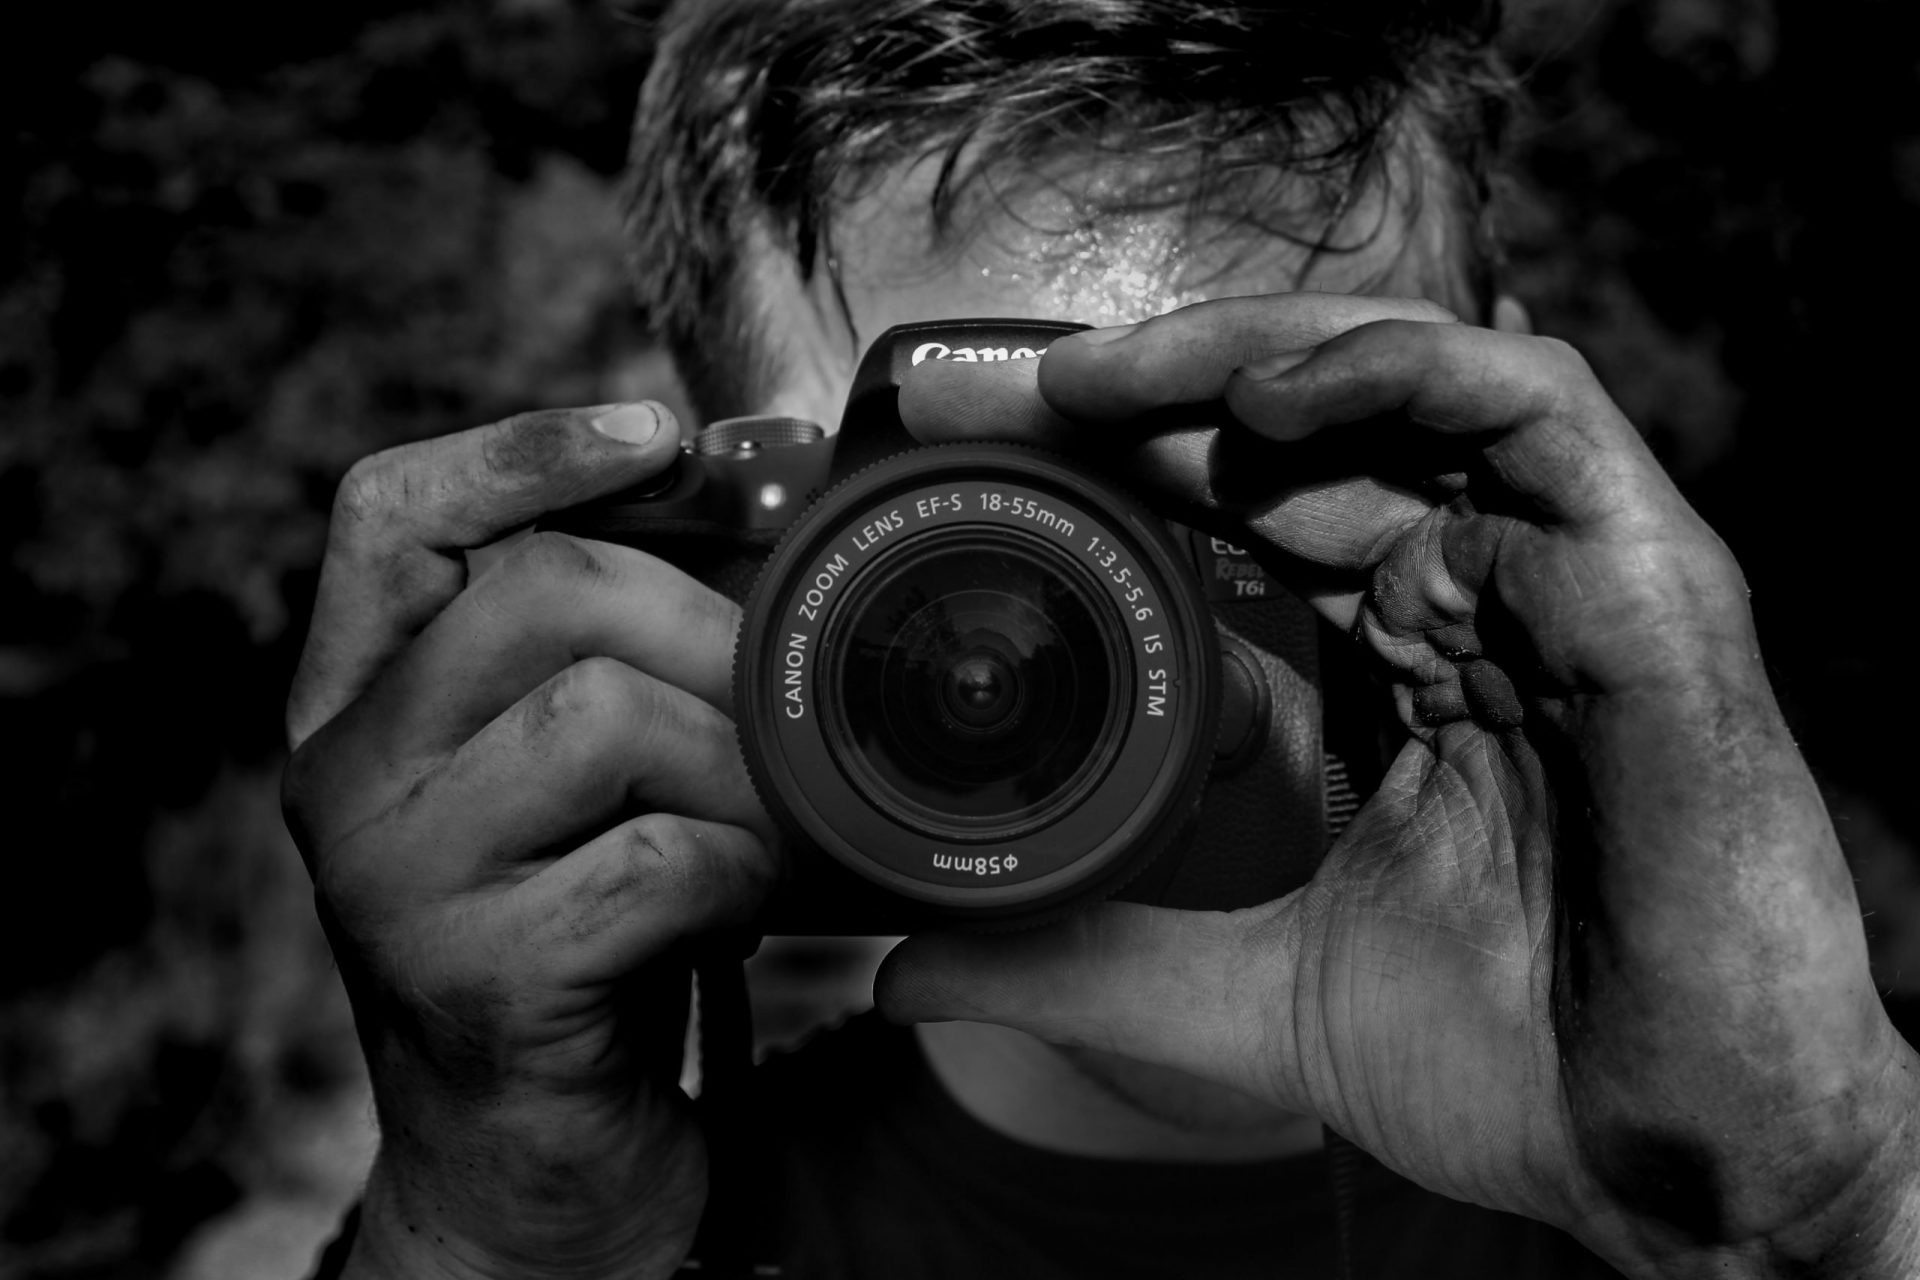 10 Common Travel Photography Mistakes and How to Avoid Them - Man taking a picture with a camera in black and white